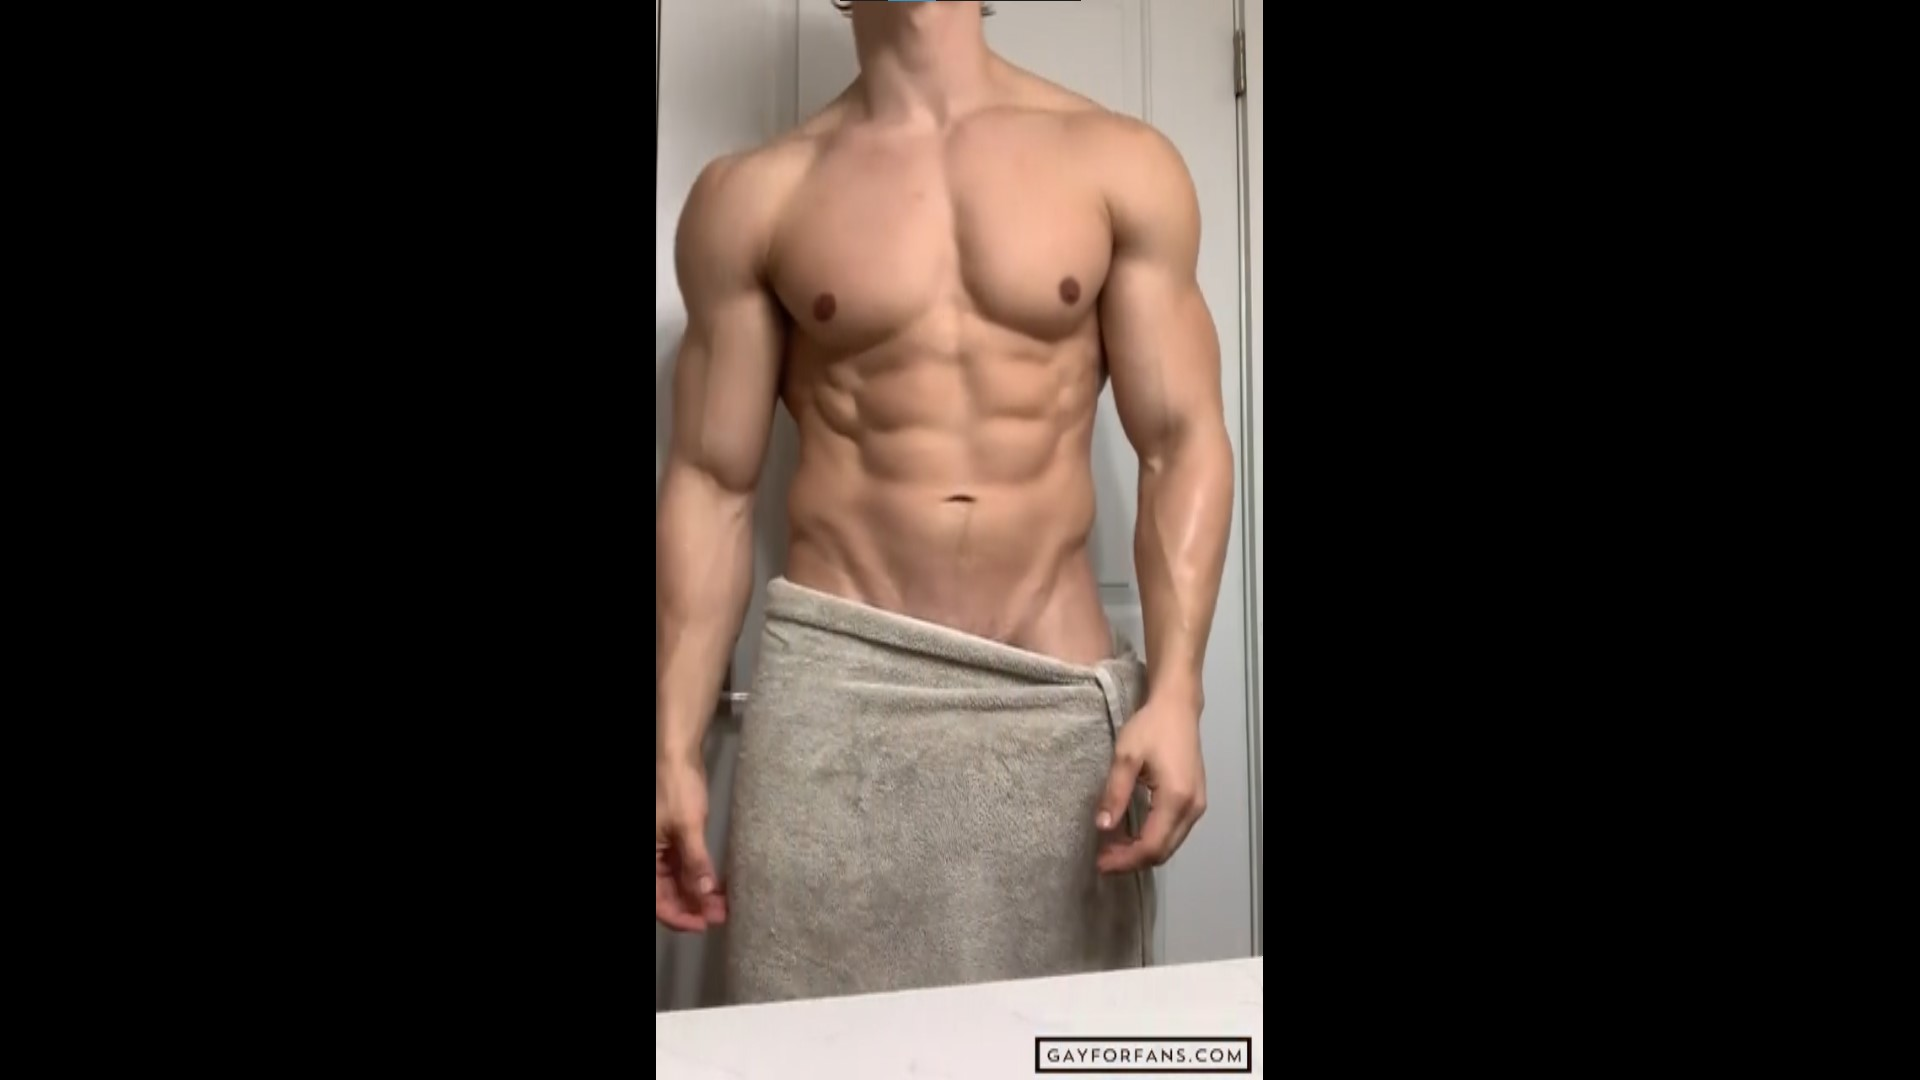 Flexing hard after a shower - ShreddedC